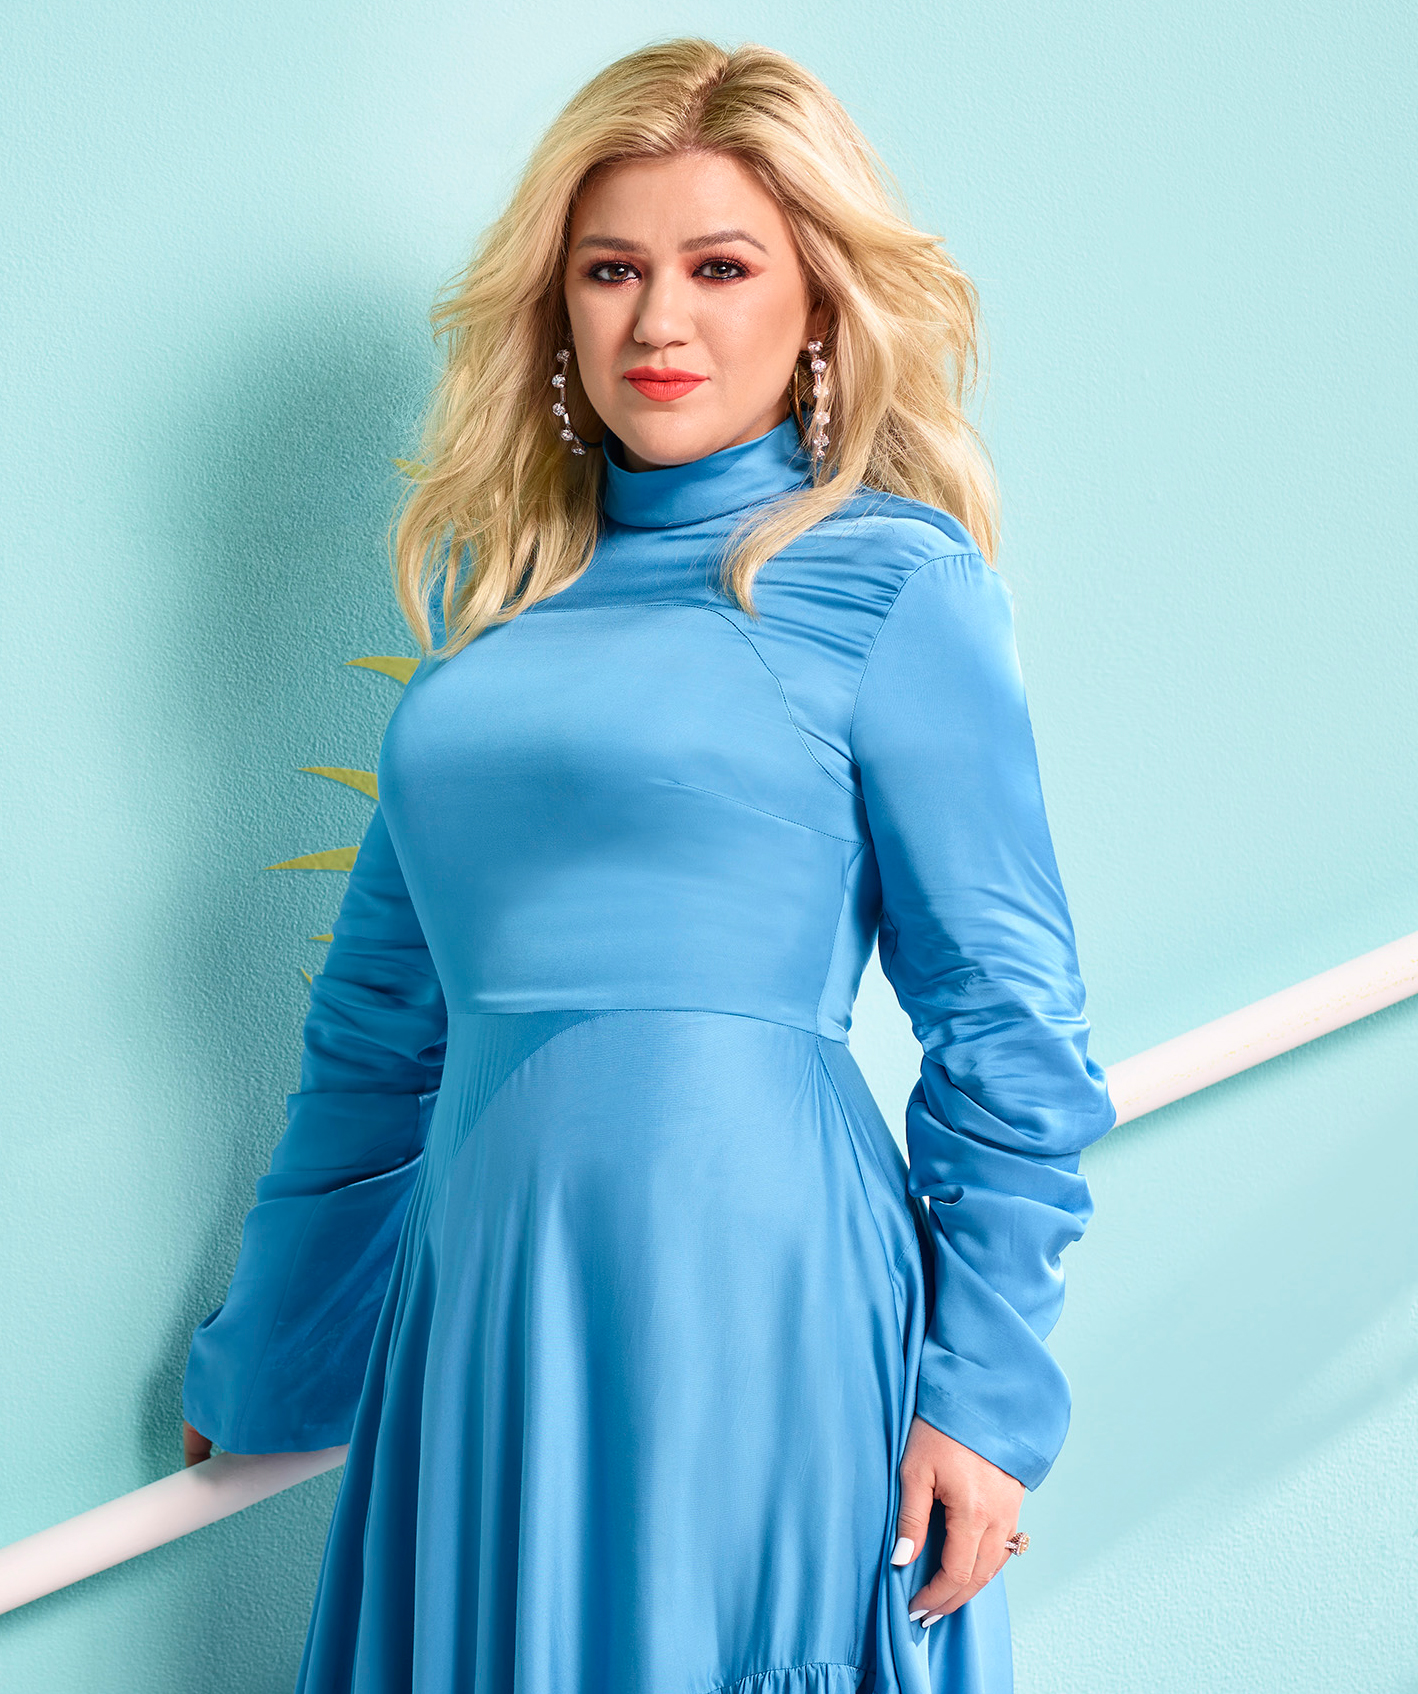 Kelly-Clarkson-Cracks-Up-Over-Her-'Enormous'-Chest-in-'The-Voice'-Promo-Photo